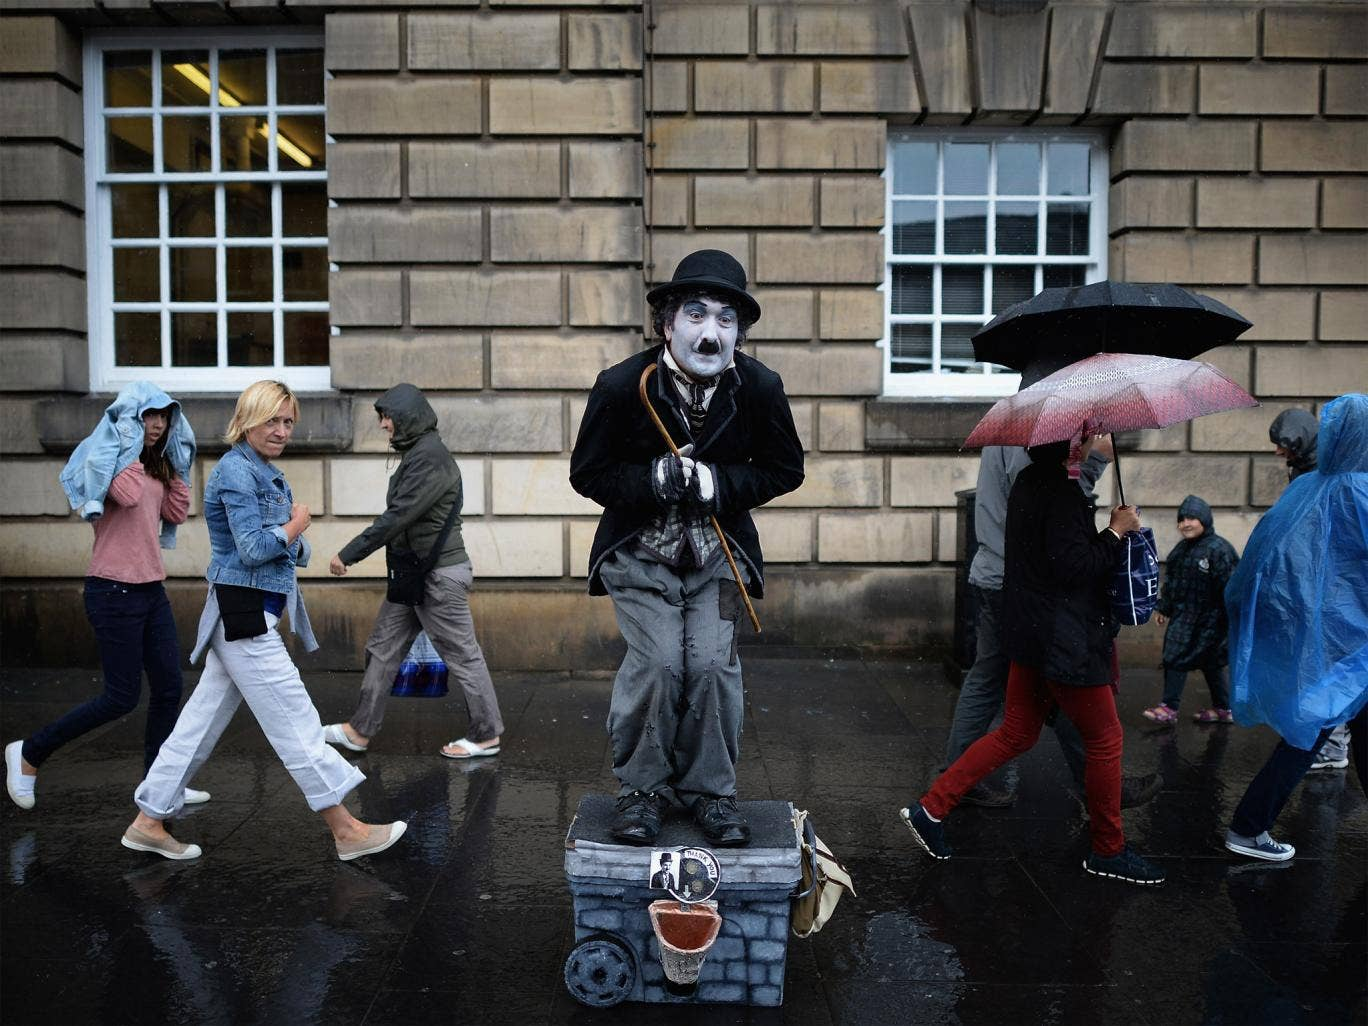 The world's biggest arts gathering attracts street performers, while more than 2,000 shows compete for attention,